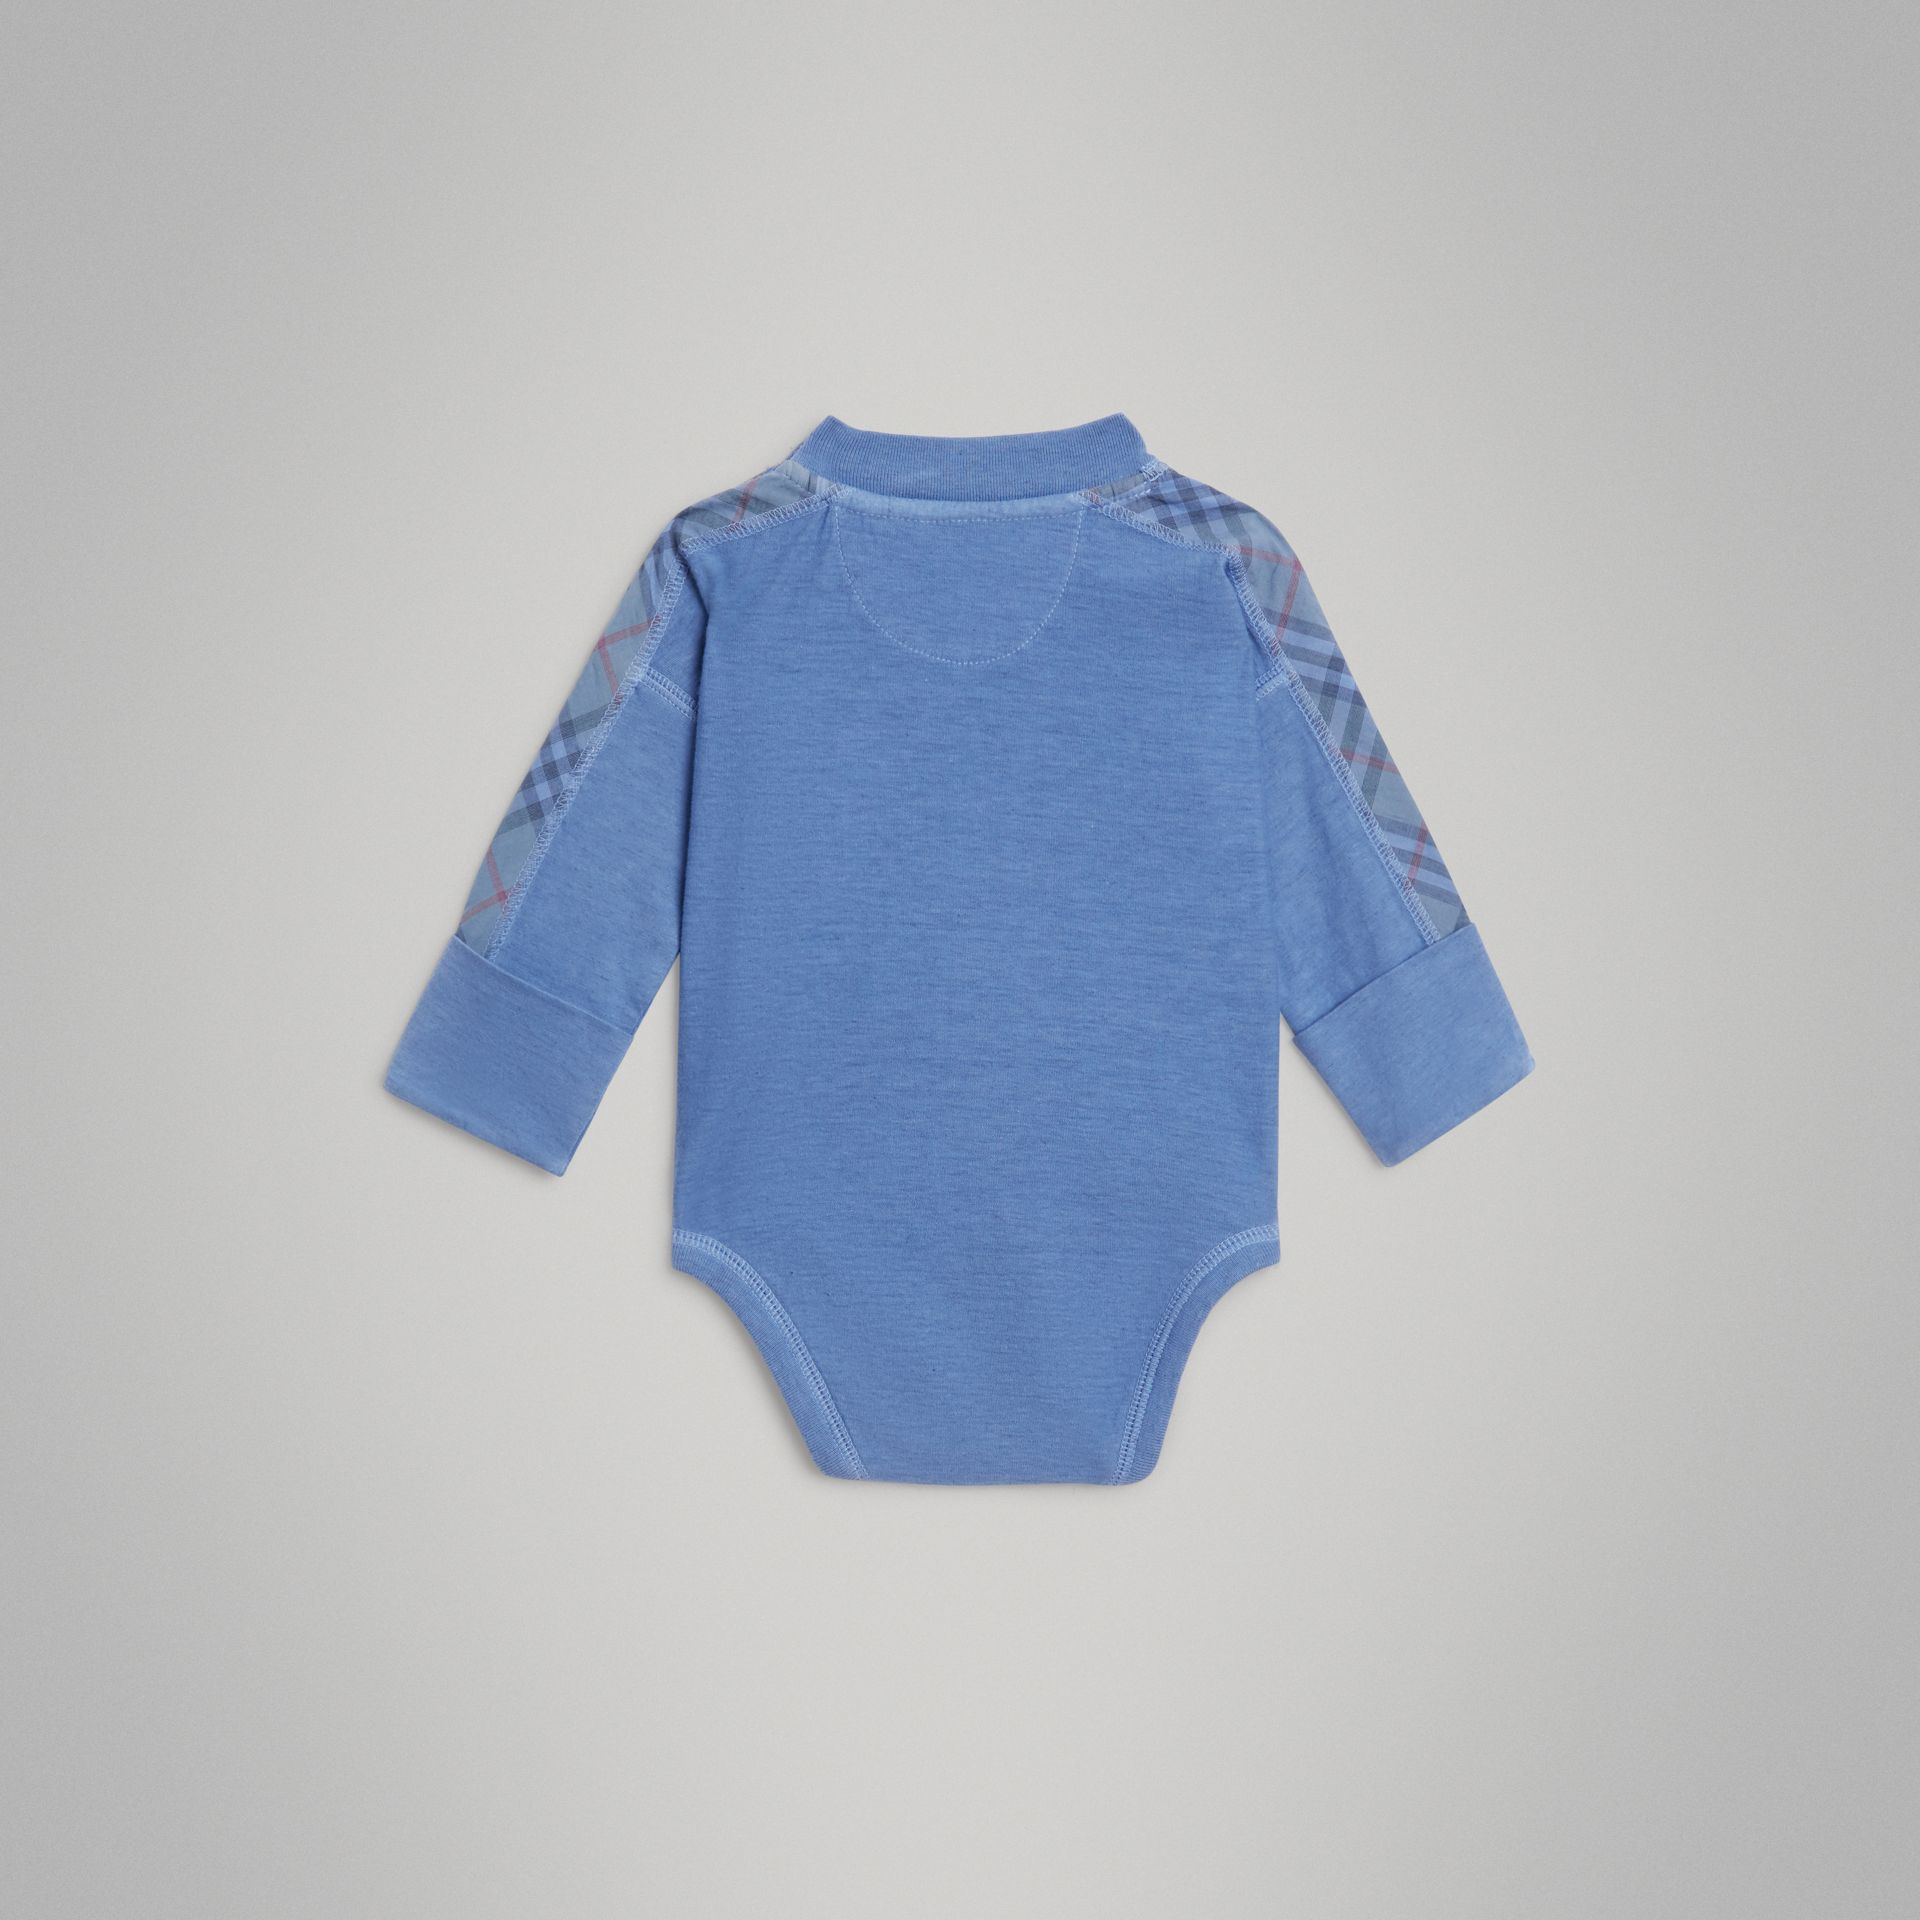 Check Cotton Three-piece Baby Gift Set in Multicolour - Children | Burberry - gallery image 7